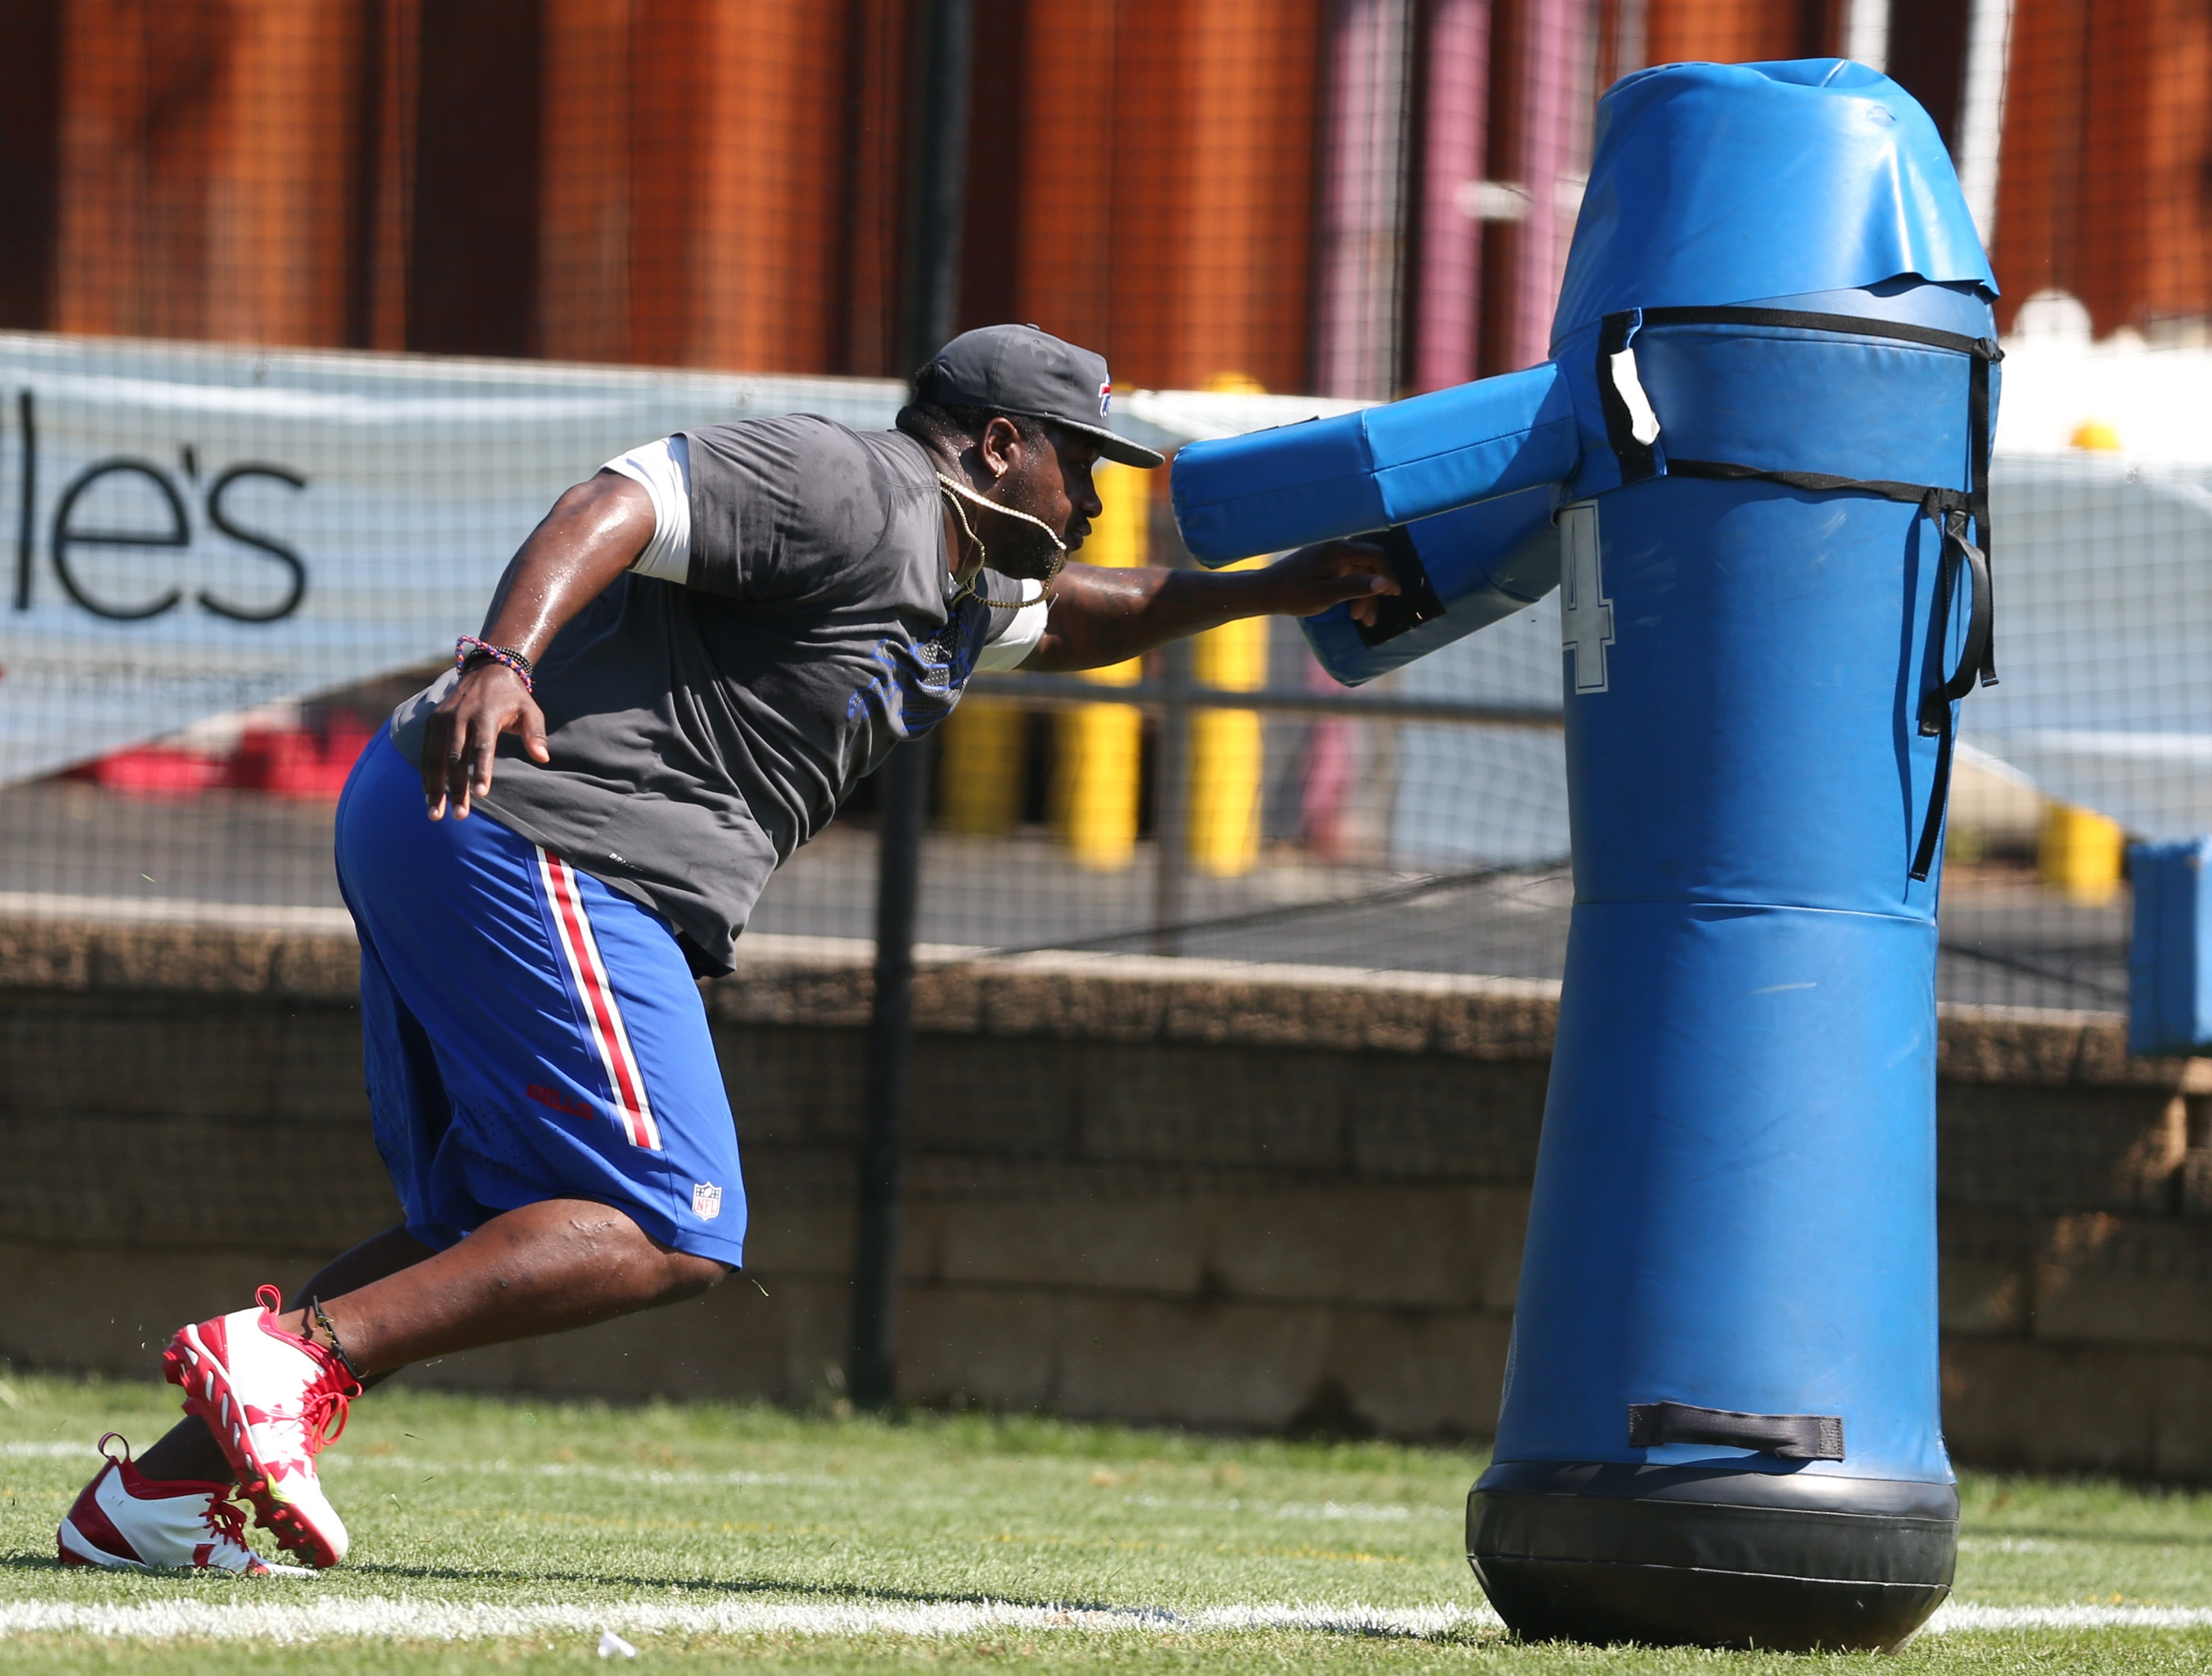 Defensive tackle Marcell Dareus could start practicing with the rest of the Bills in the near future but, in the meantime, he's still working out.